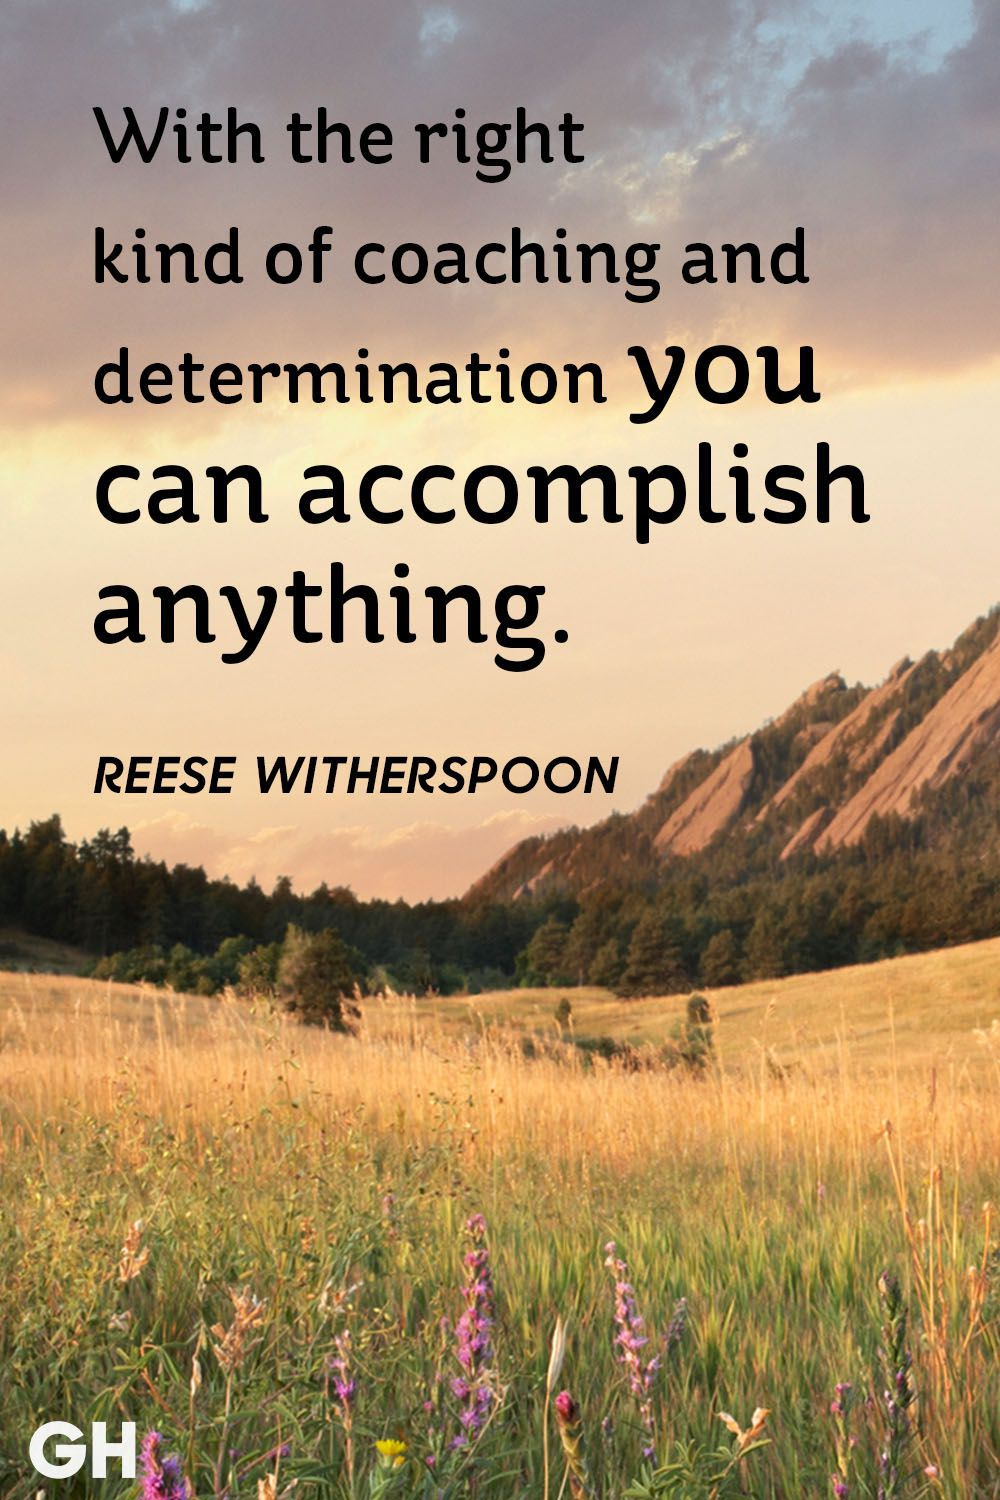 Inspirational Quotes About Positive: With The Right Kind Of Coaching And Determination You Can